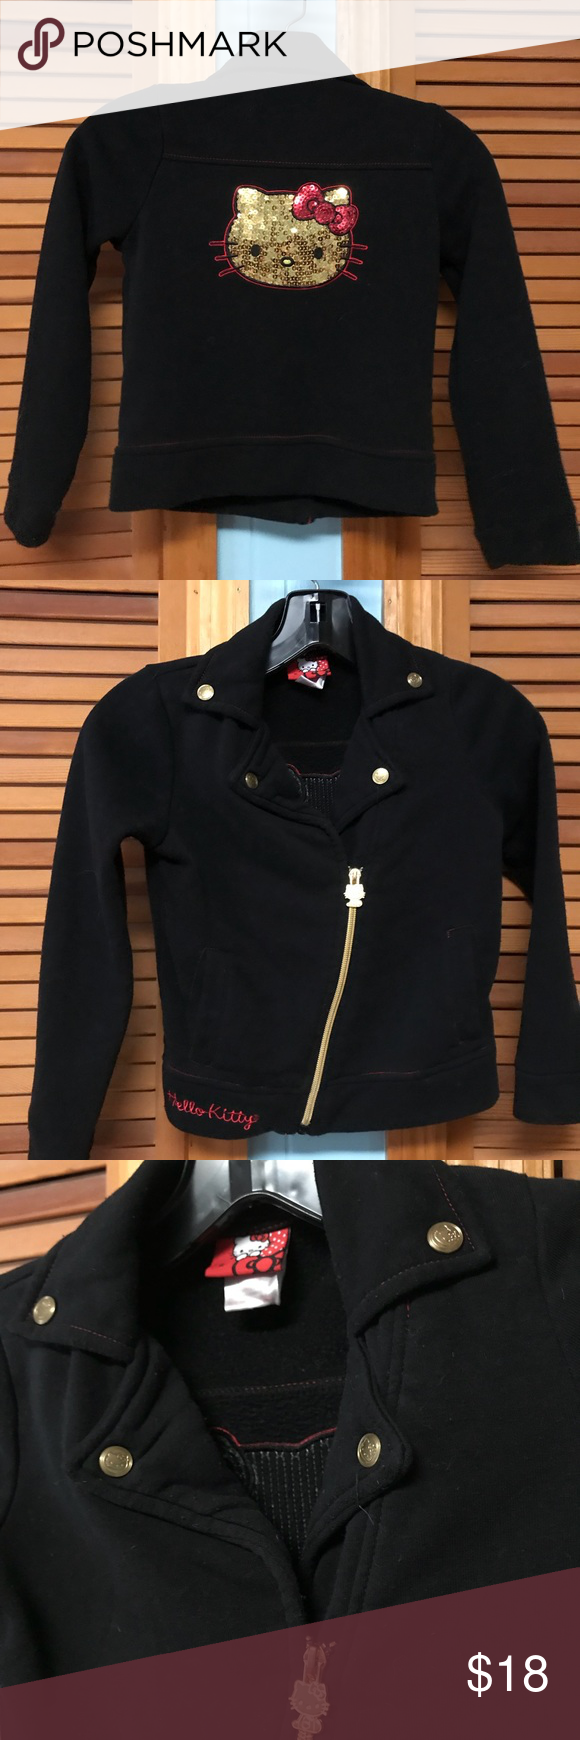 950a13c23 Girls Hello Kitty 6 utility jacket black So cute! Really fun utility jacket  look at